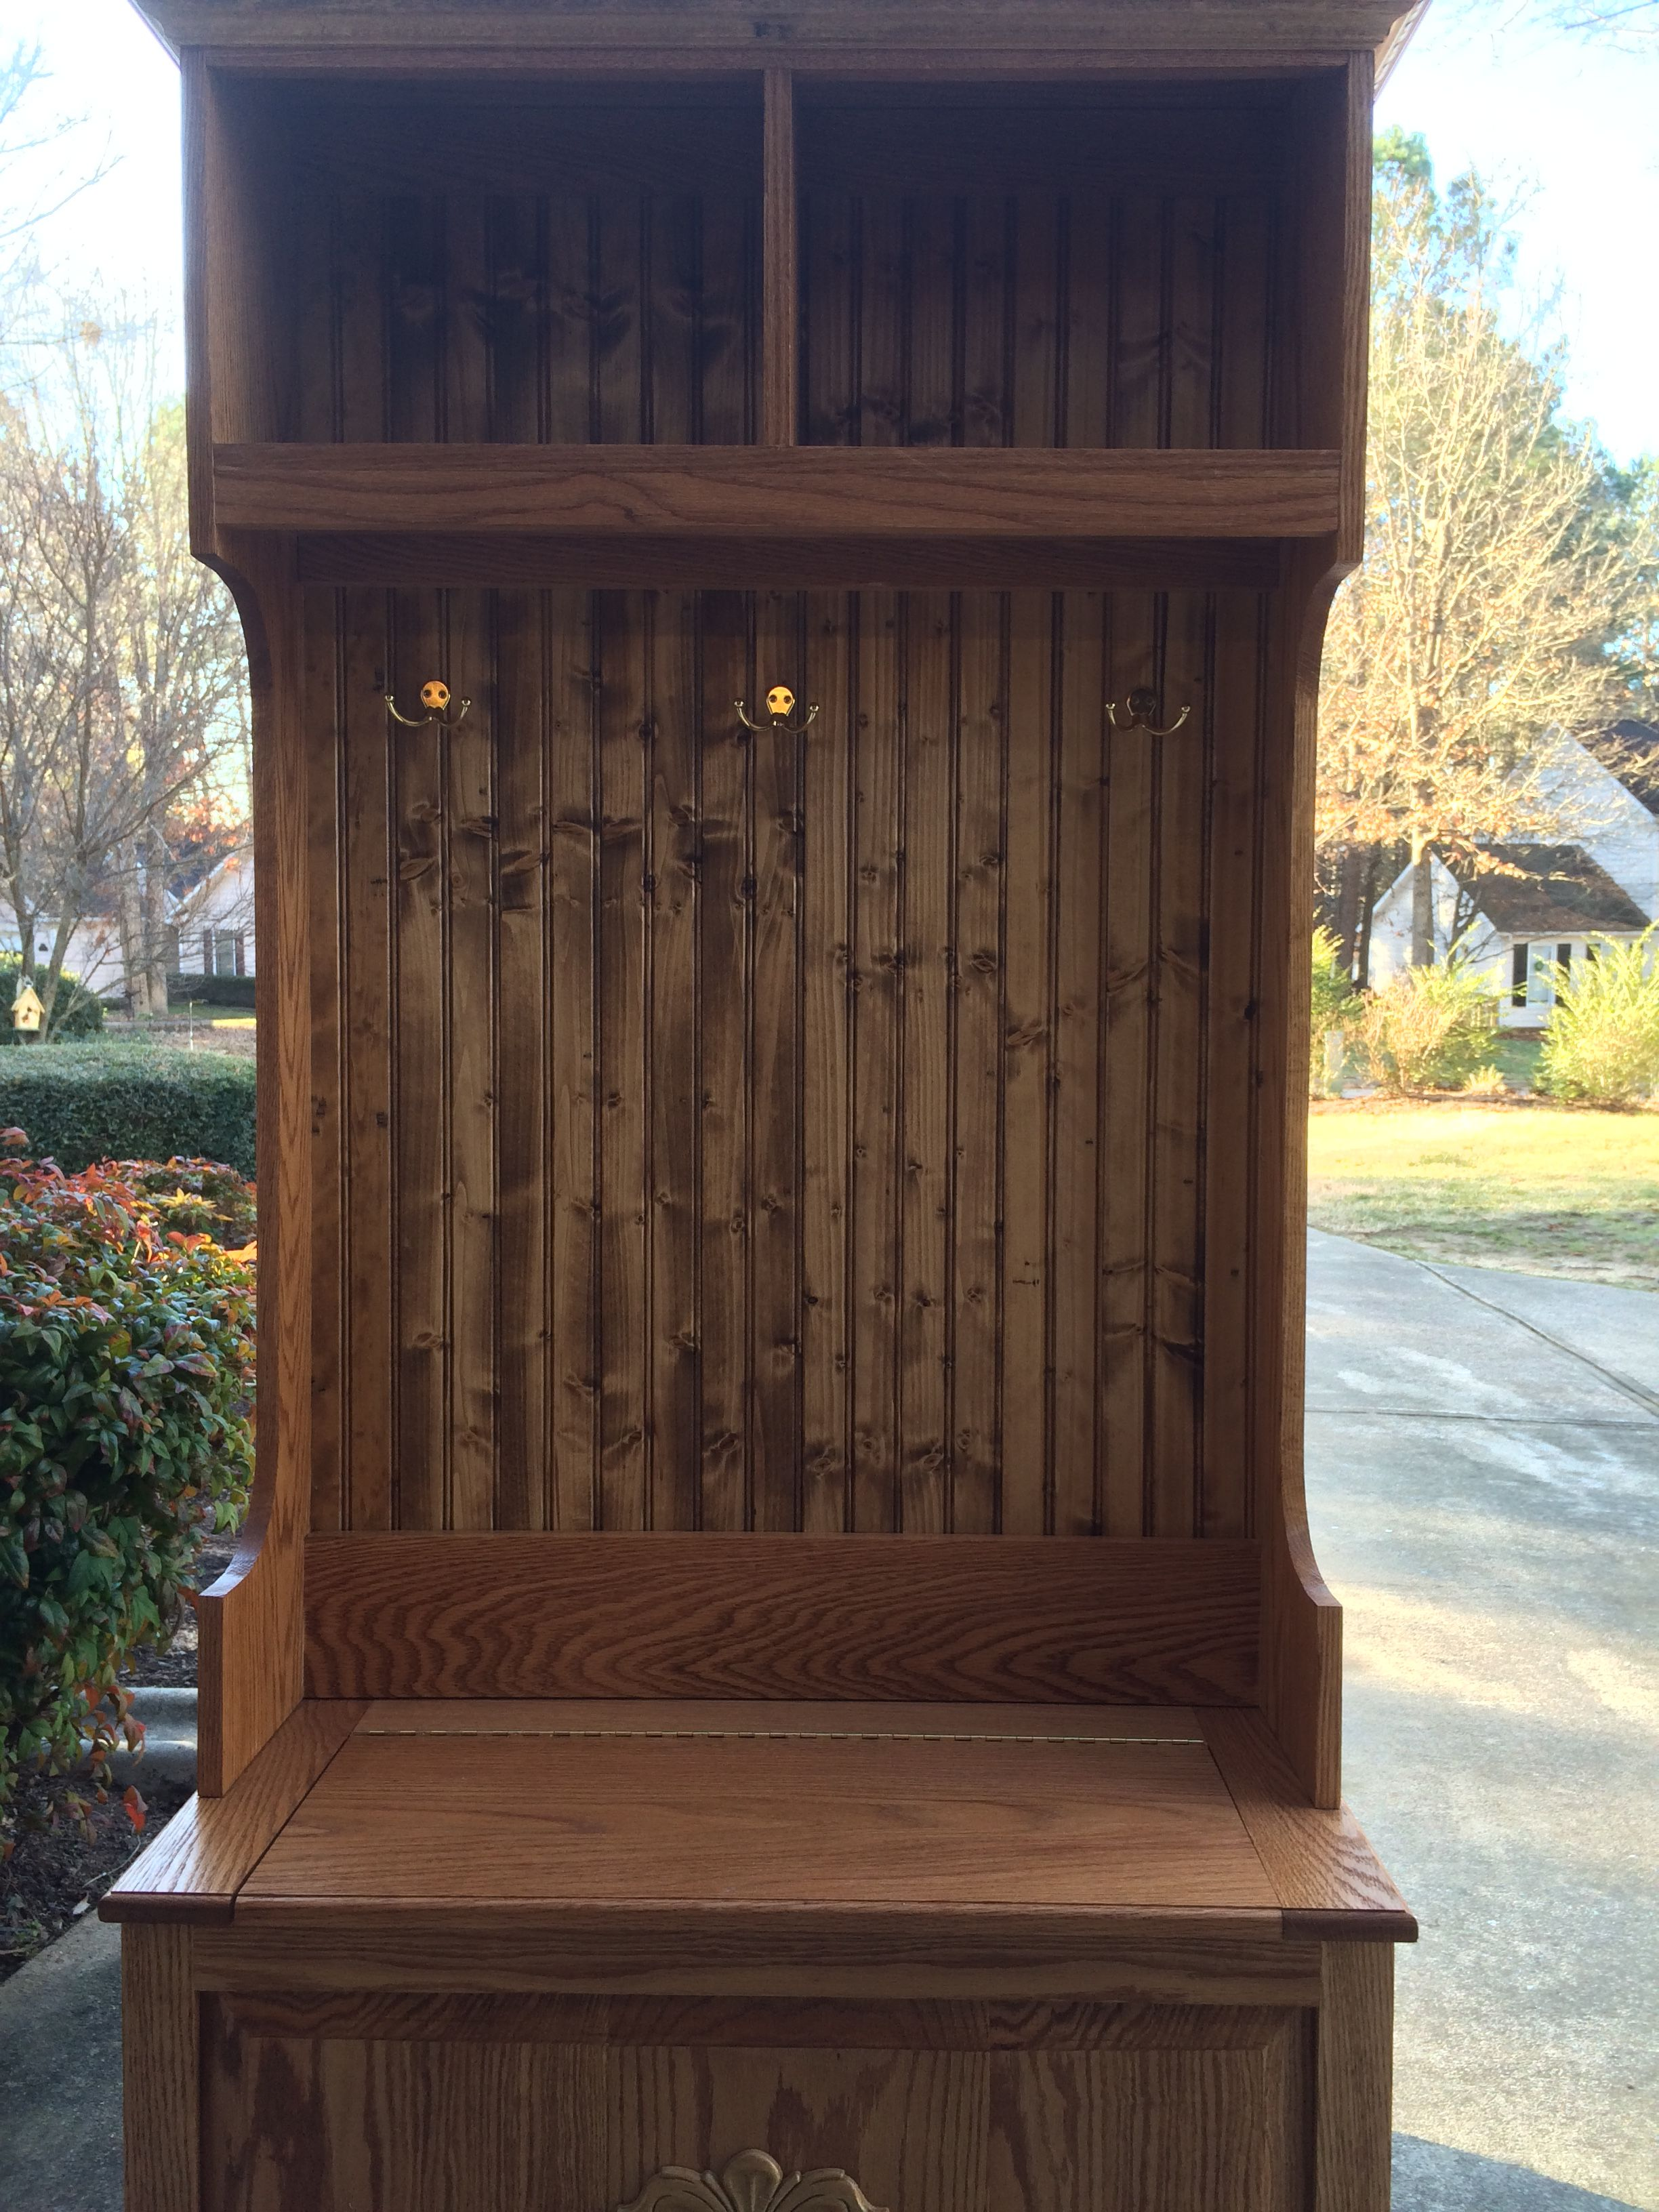 Buy A Custom Made Hall Tree Made To Order From Shaker